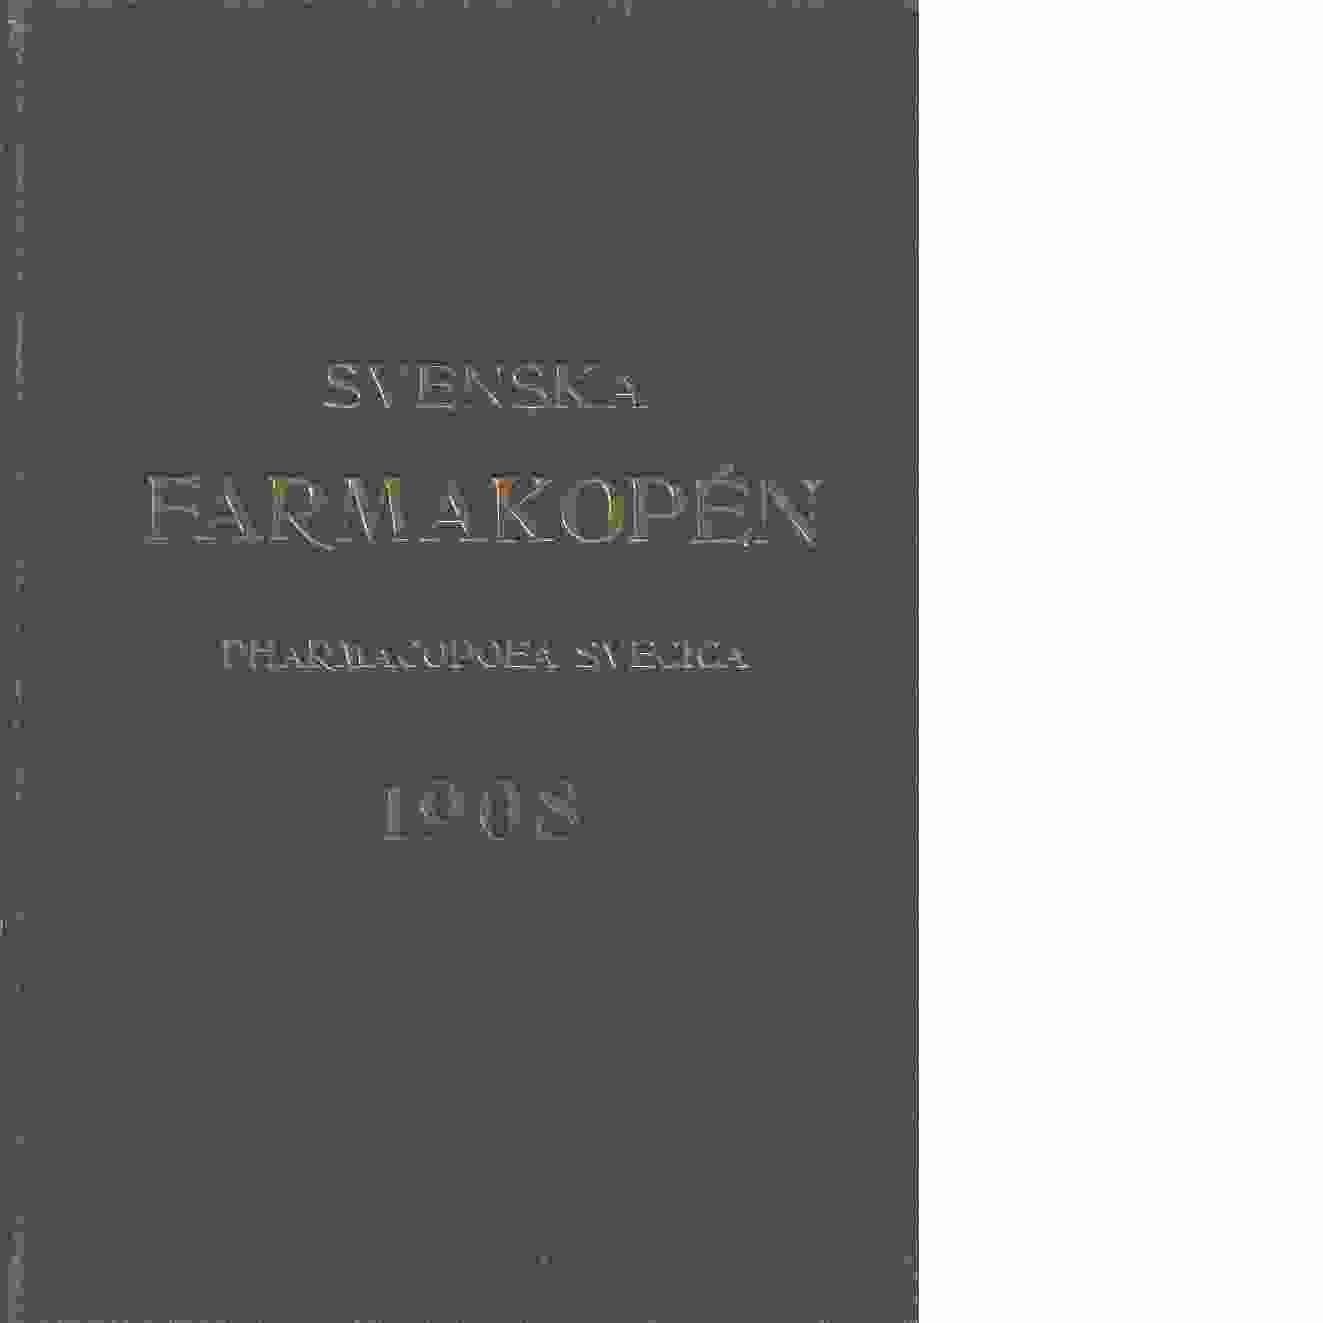 Svenska farmakopén 1908 - Red.